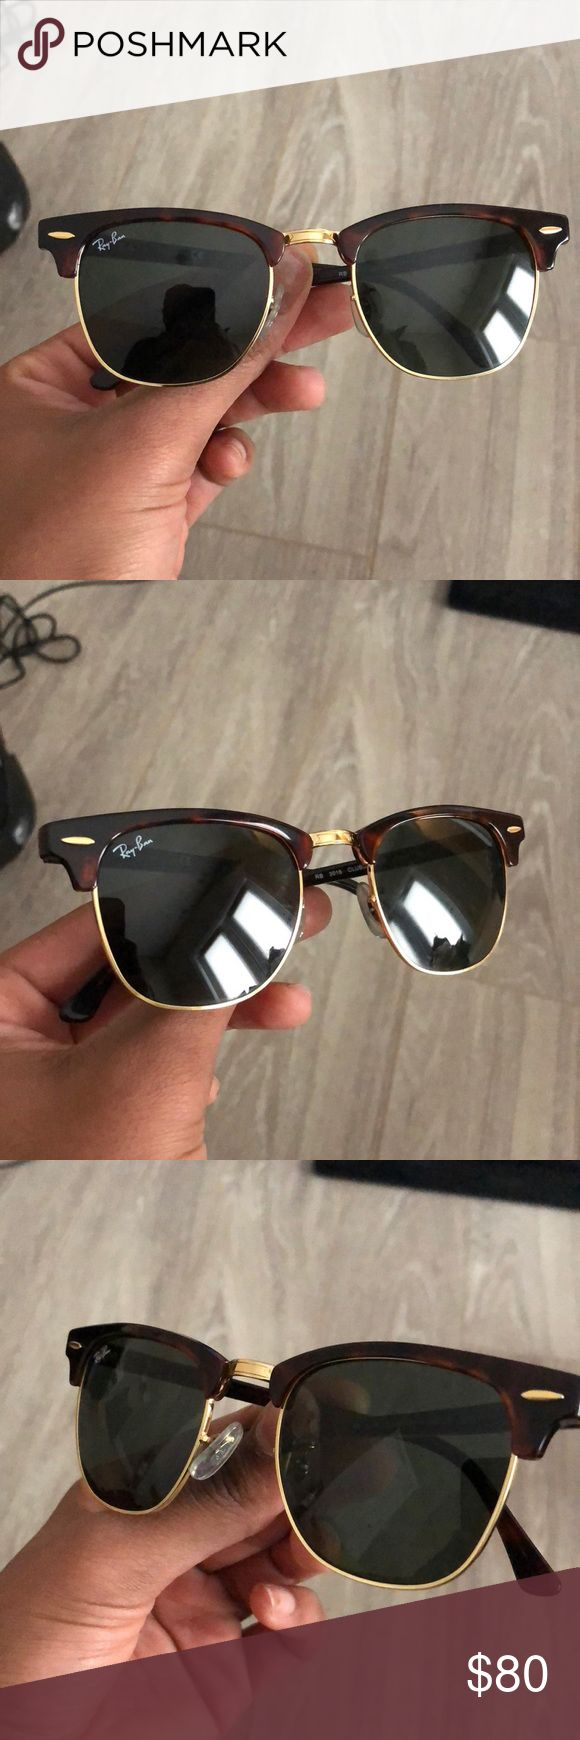 Ray Ban Club Master Tortoise brown ray ban club master. Rarely used, in perfect condition. No scratches or damage. Comes with Ray Ban case and wipe. They're in perfect condition, just want a new pair in another style. Willing to trade for other Ray Bans. Ray-Ban Accessories Sunglasses